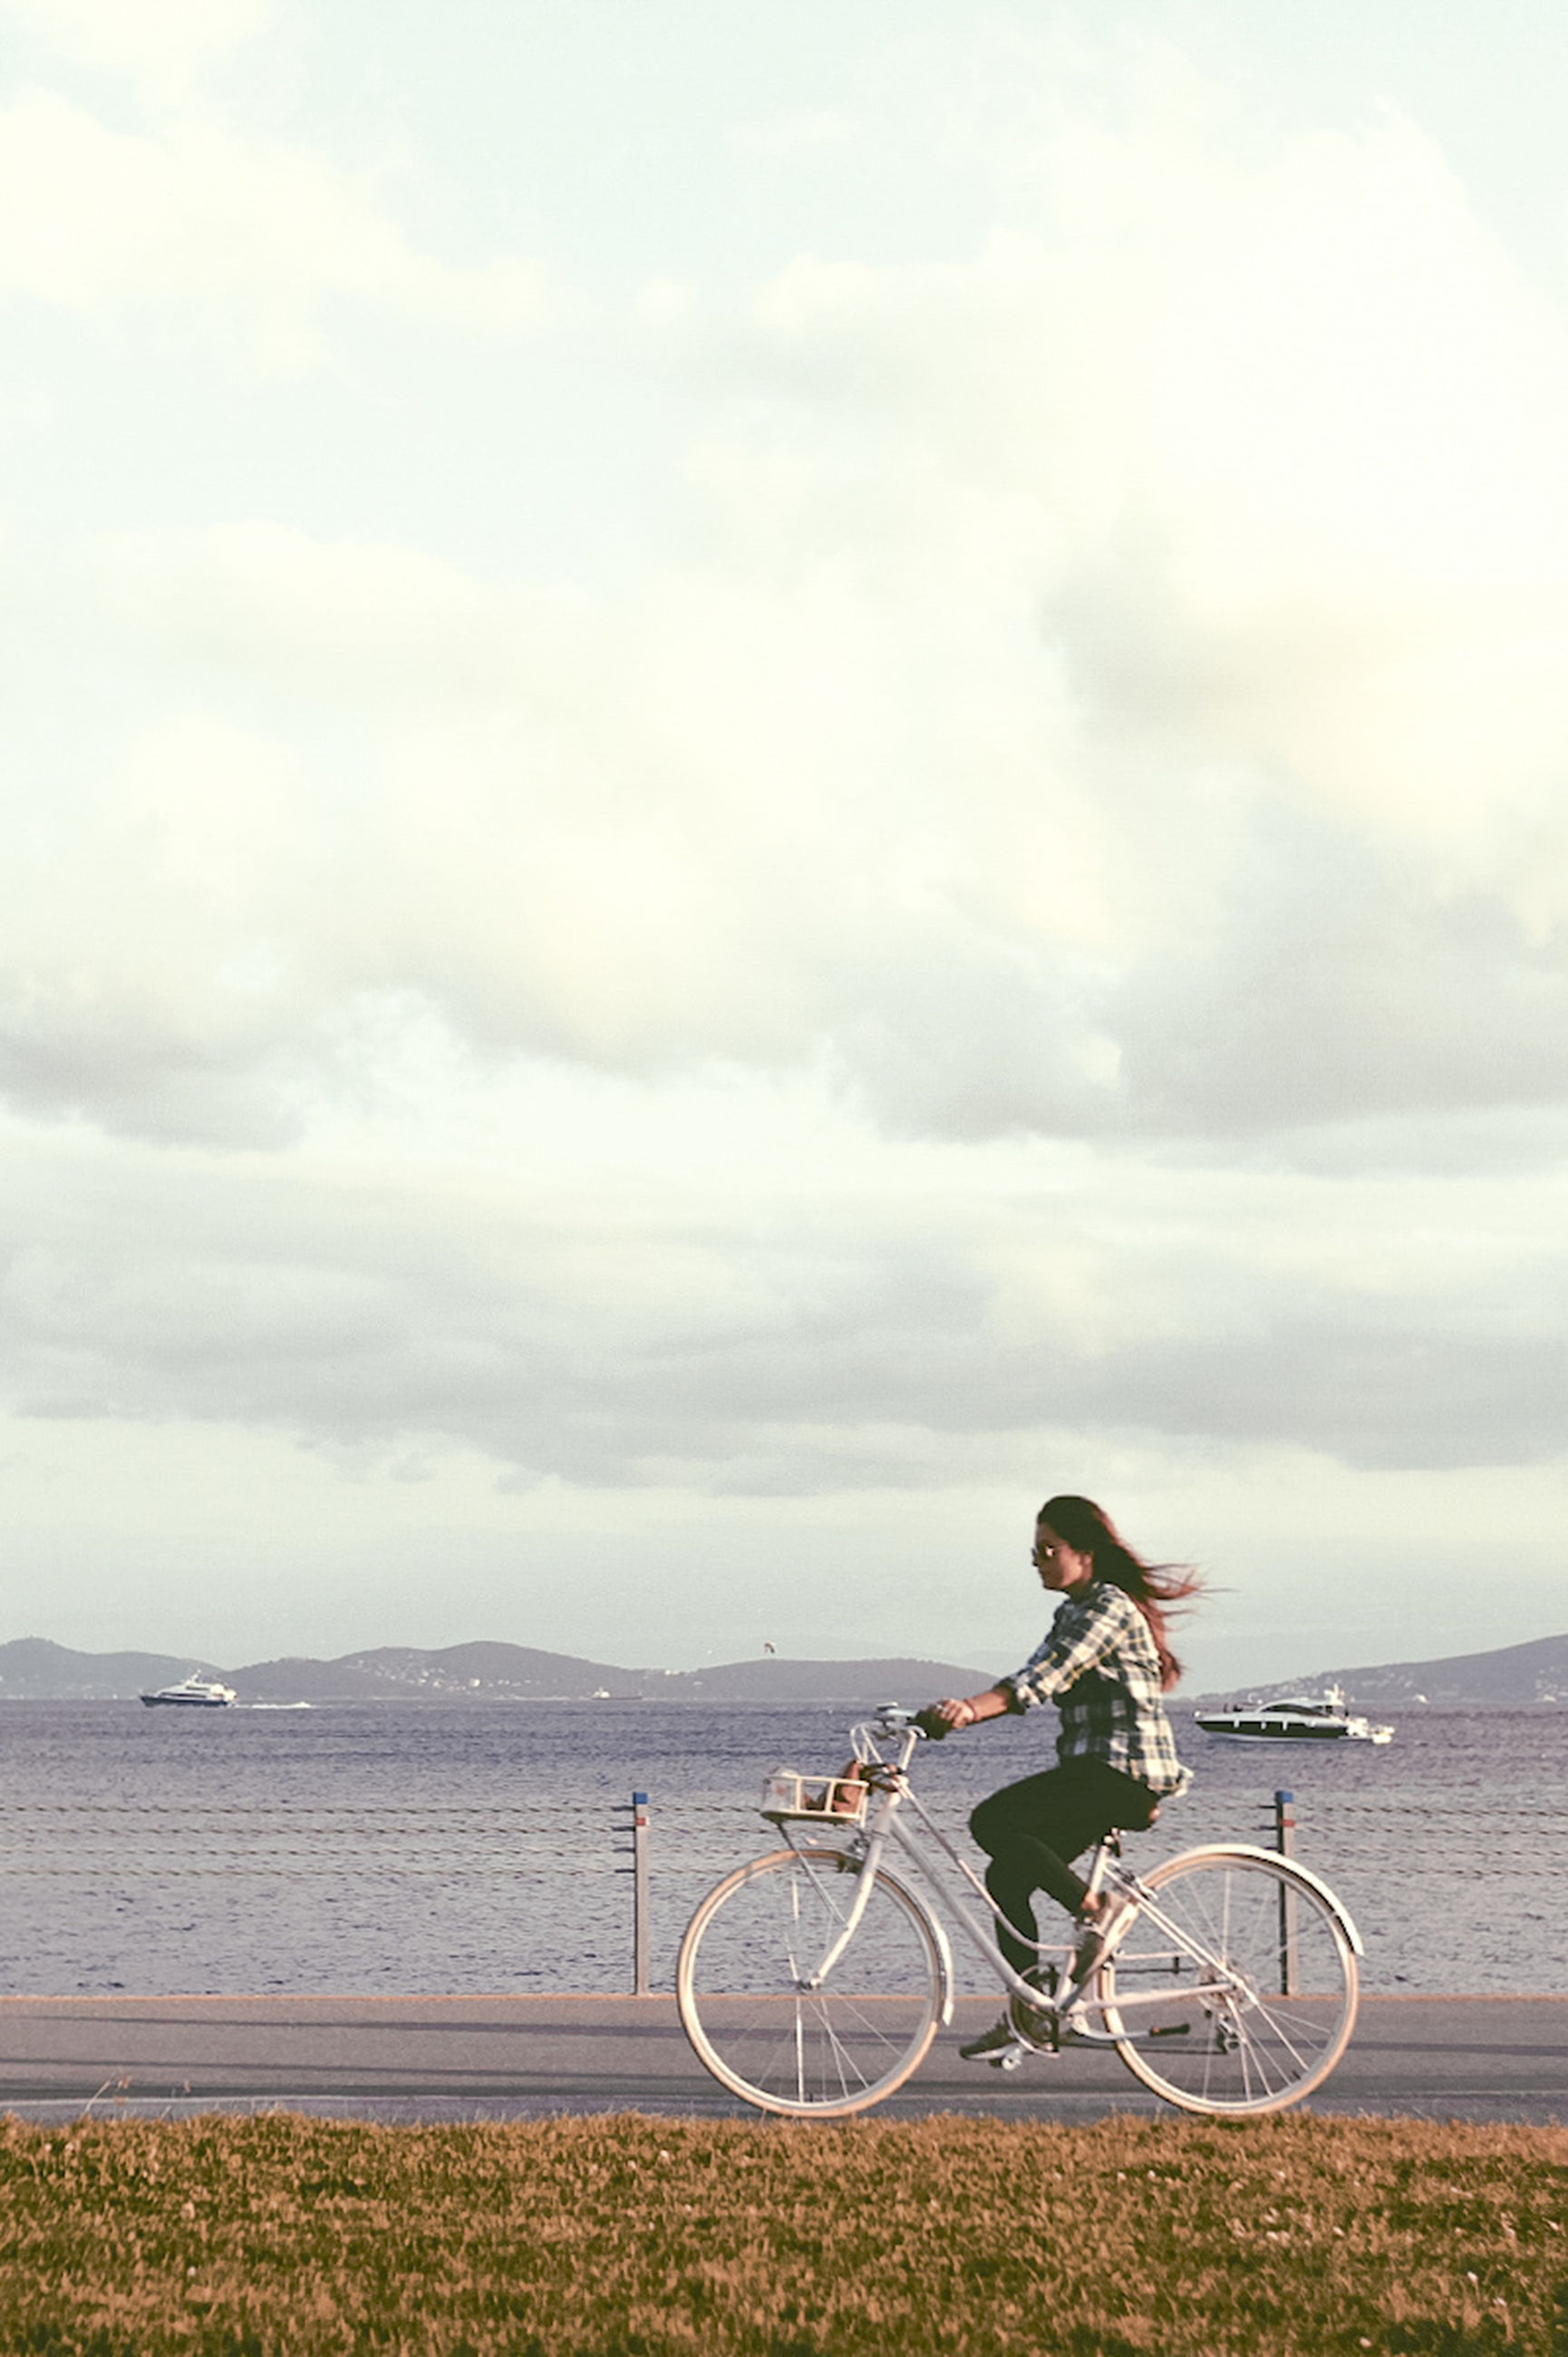 bicycle, sky, cycling, sea, one person, outdoors, riding, nature, cloud - sky, horizon over water, men, water, scenics, sport, day, real people, one man only, only men, people, drone